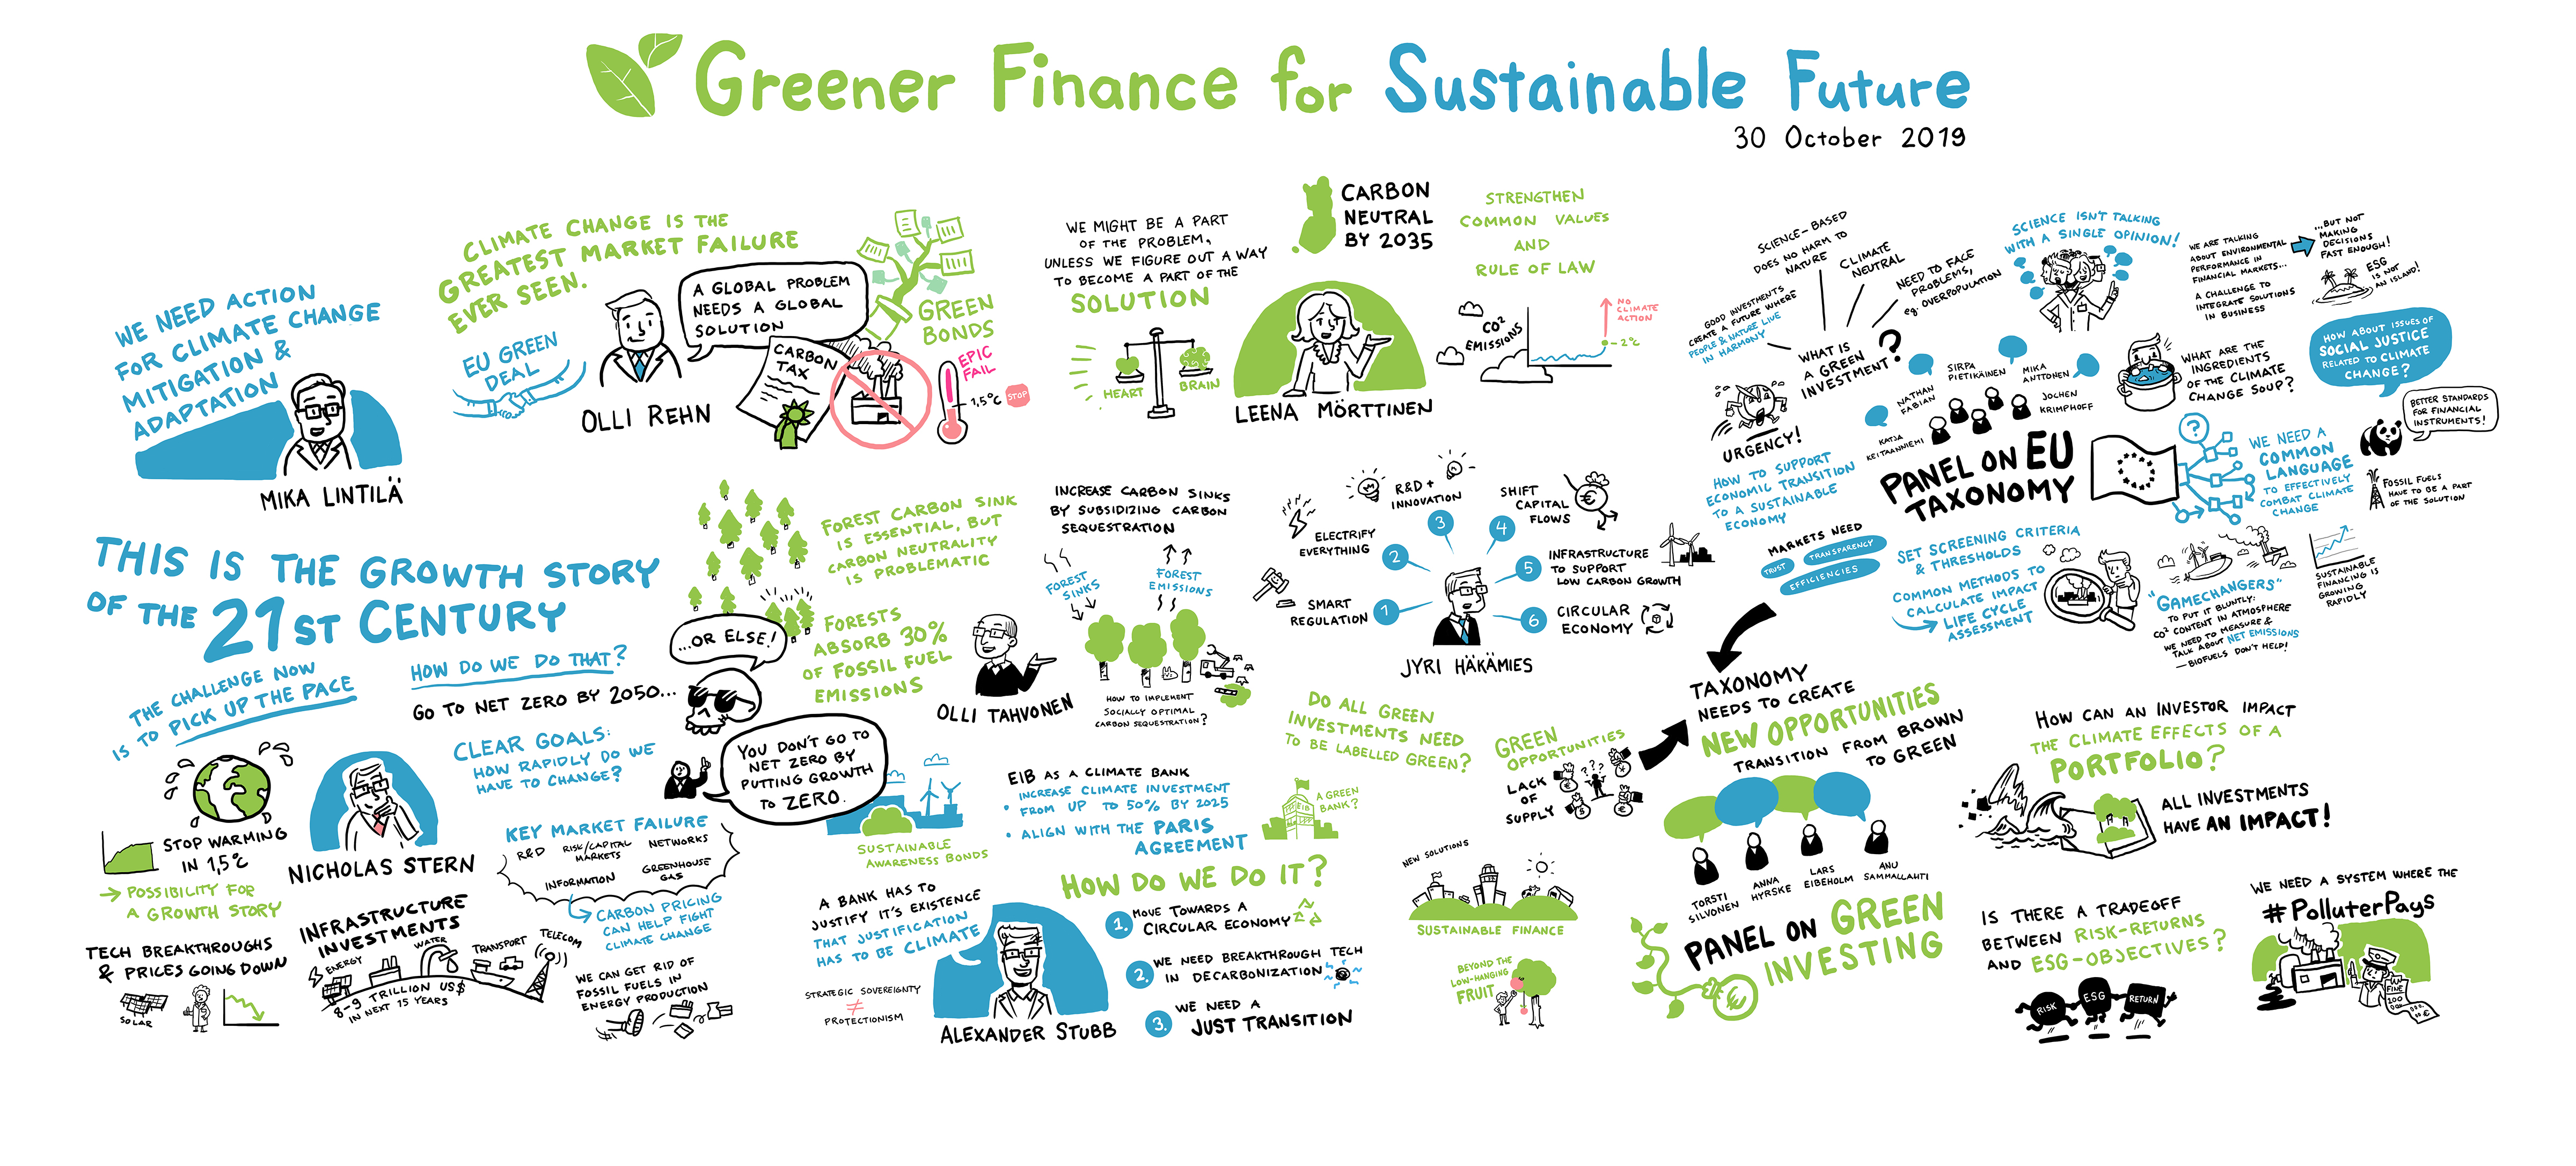 Drawing 1 Greener Finance for Sustainable Future seminar 2019